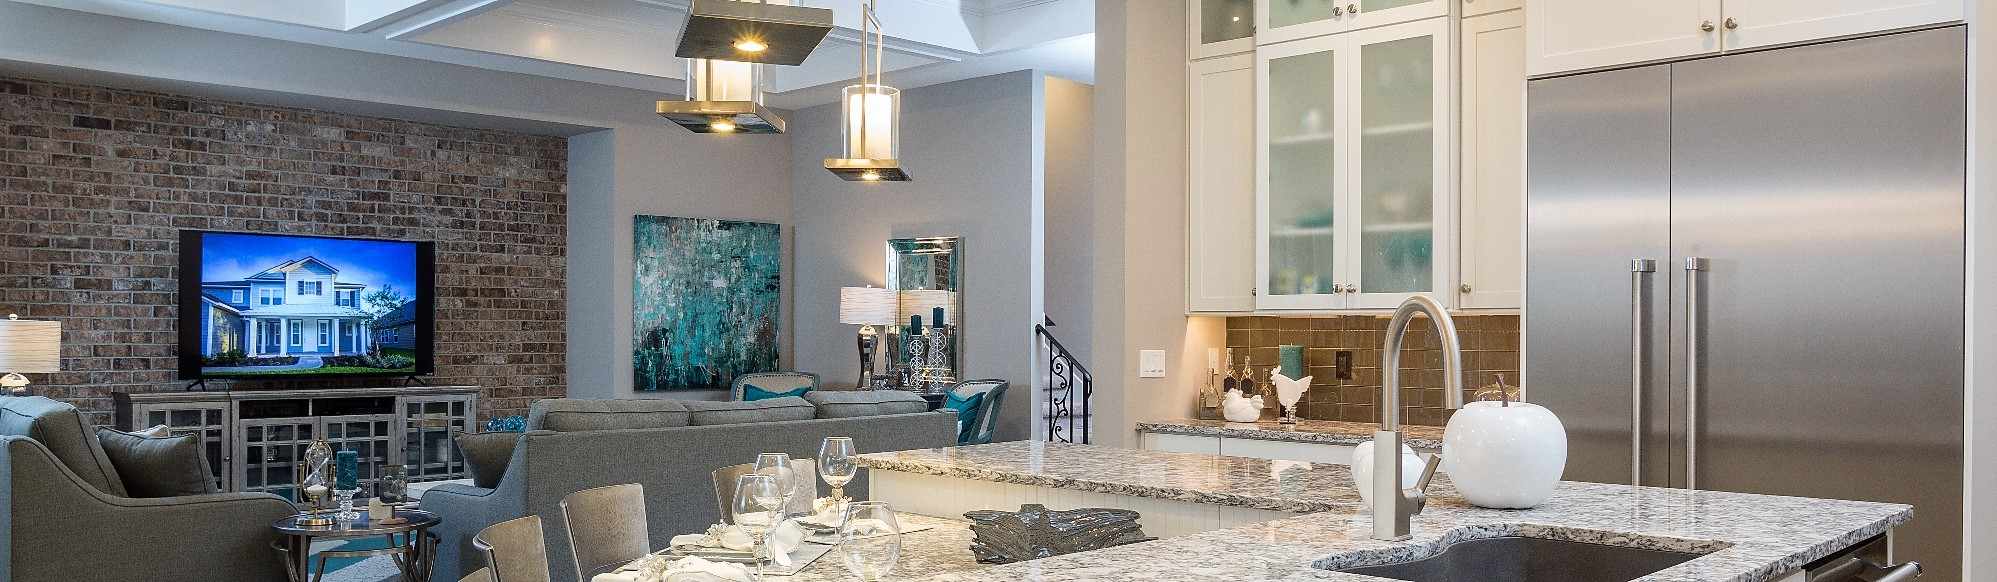 The Monroe Model-Home by Providence Homes in The Outlook at Twenty Mile